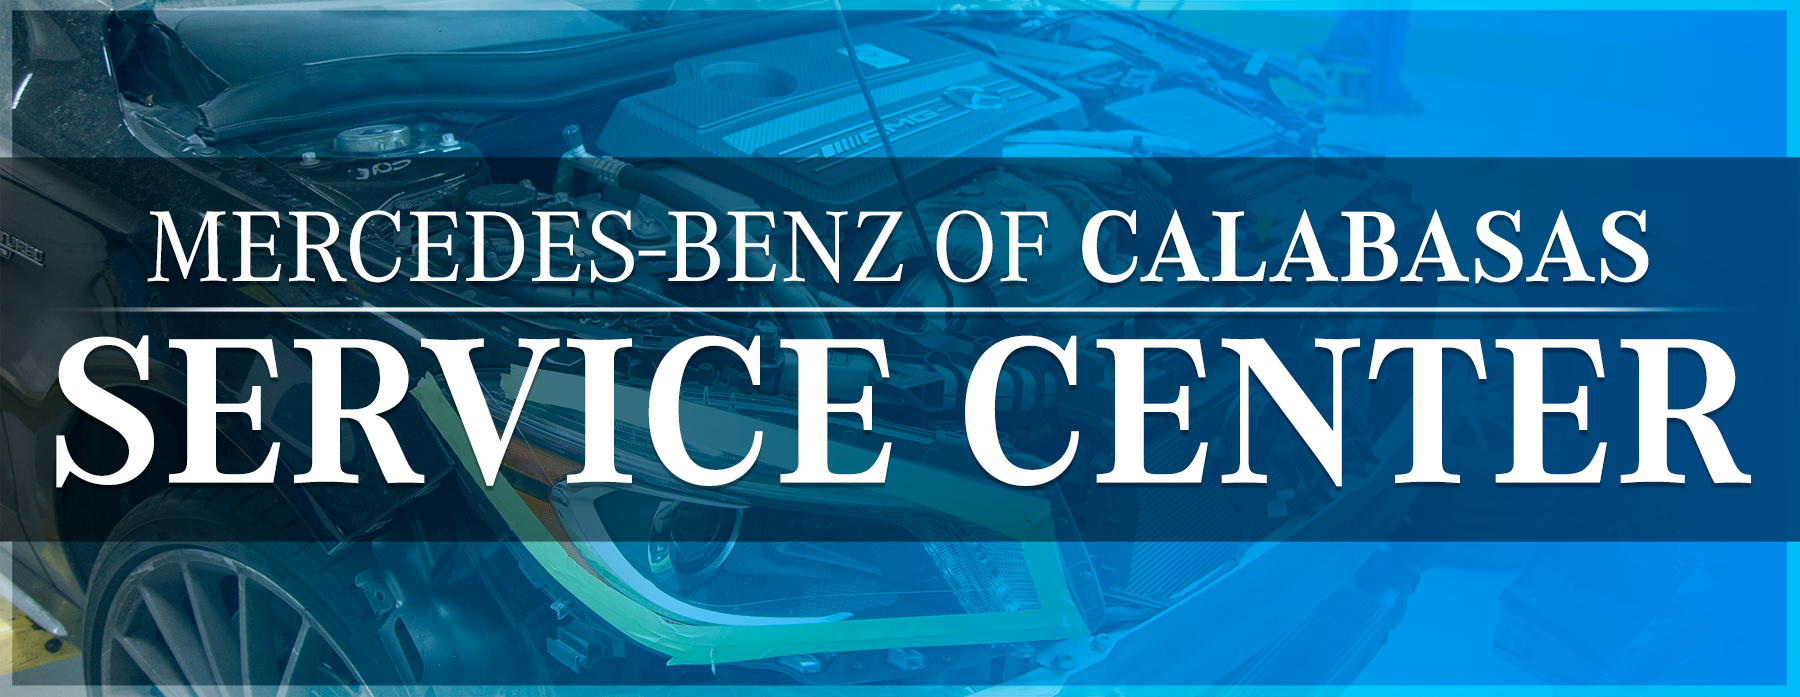 Mercedes benz auto repair service in calabasas la county for Mercedes benz rockville centre service